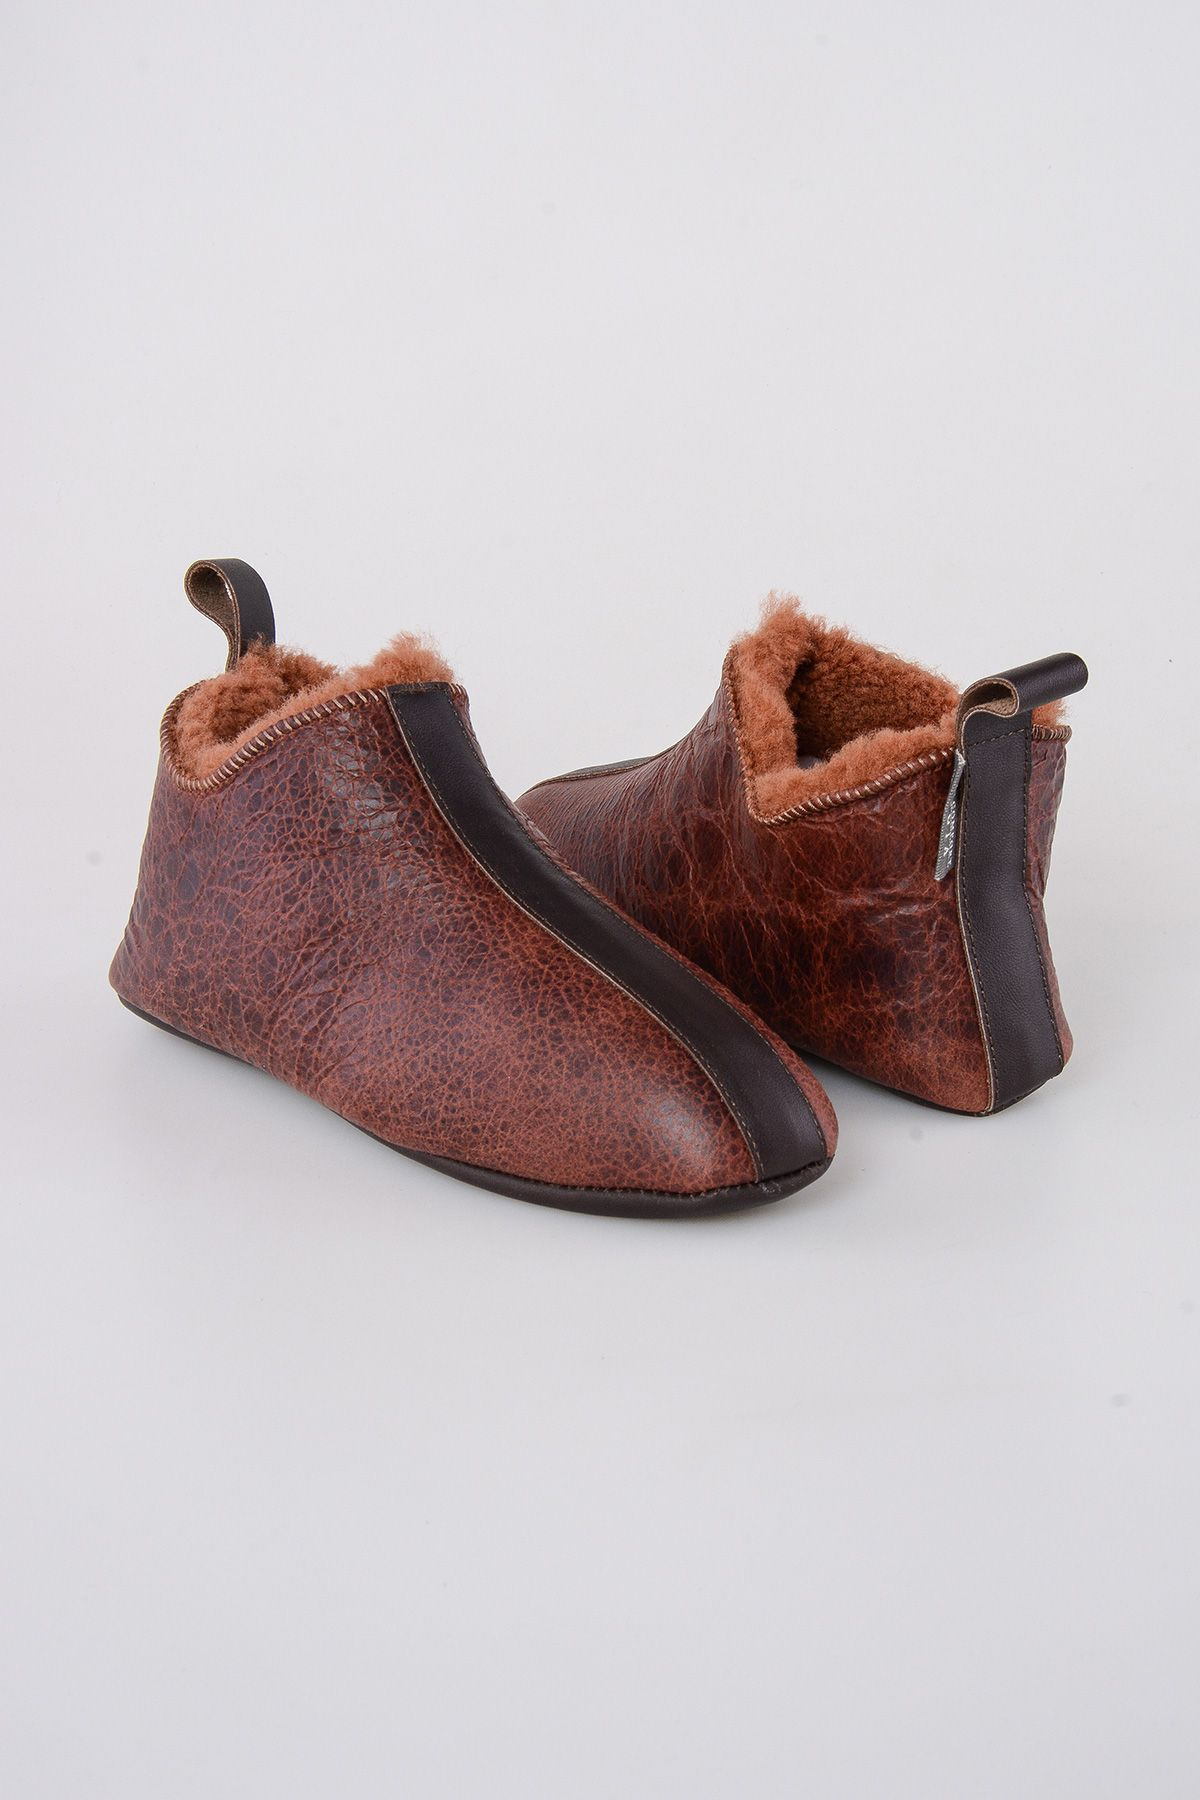 Pegia Shearling Men's House Shoes 111008 Ginger